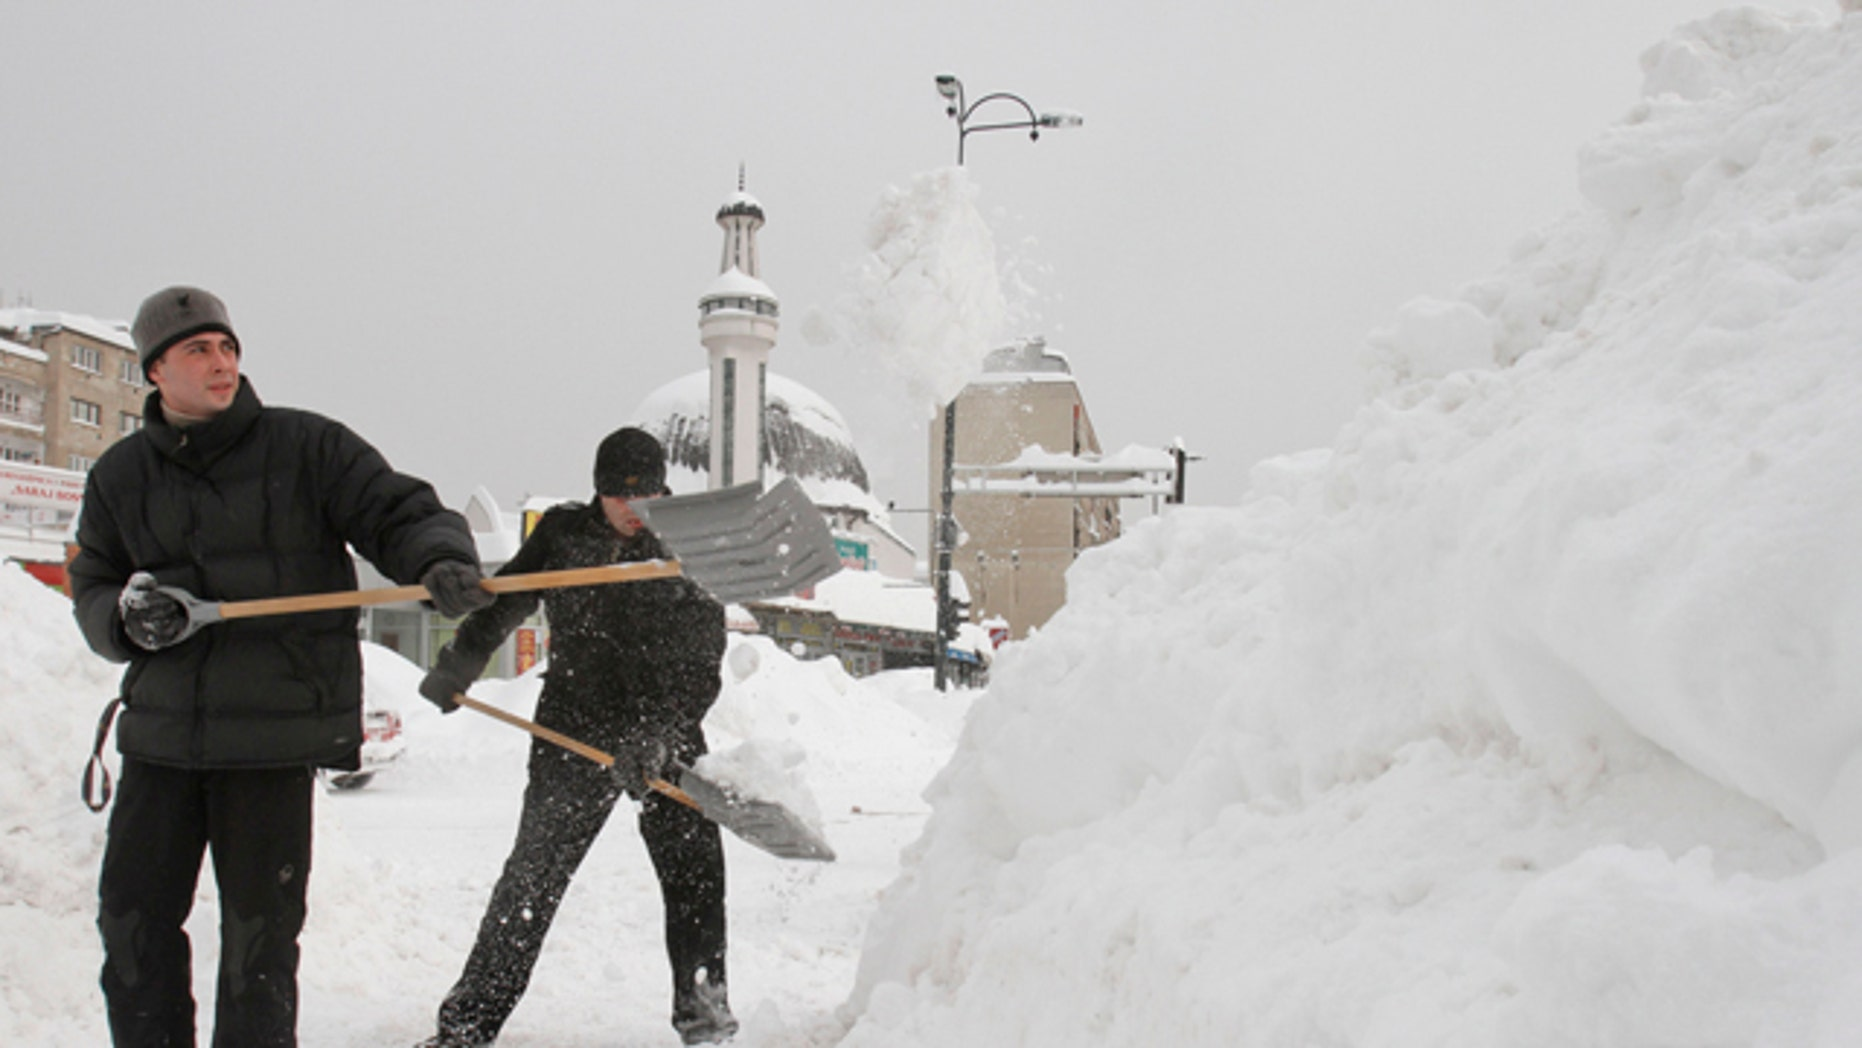 Feb. 4, 2012: Bosnian men shovel deep snow to clear the path for pedestrians, in the Bosnian capital of Sarajevo.